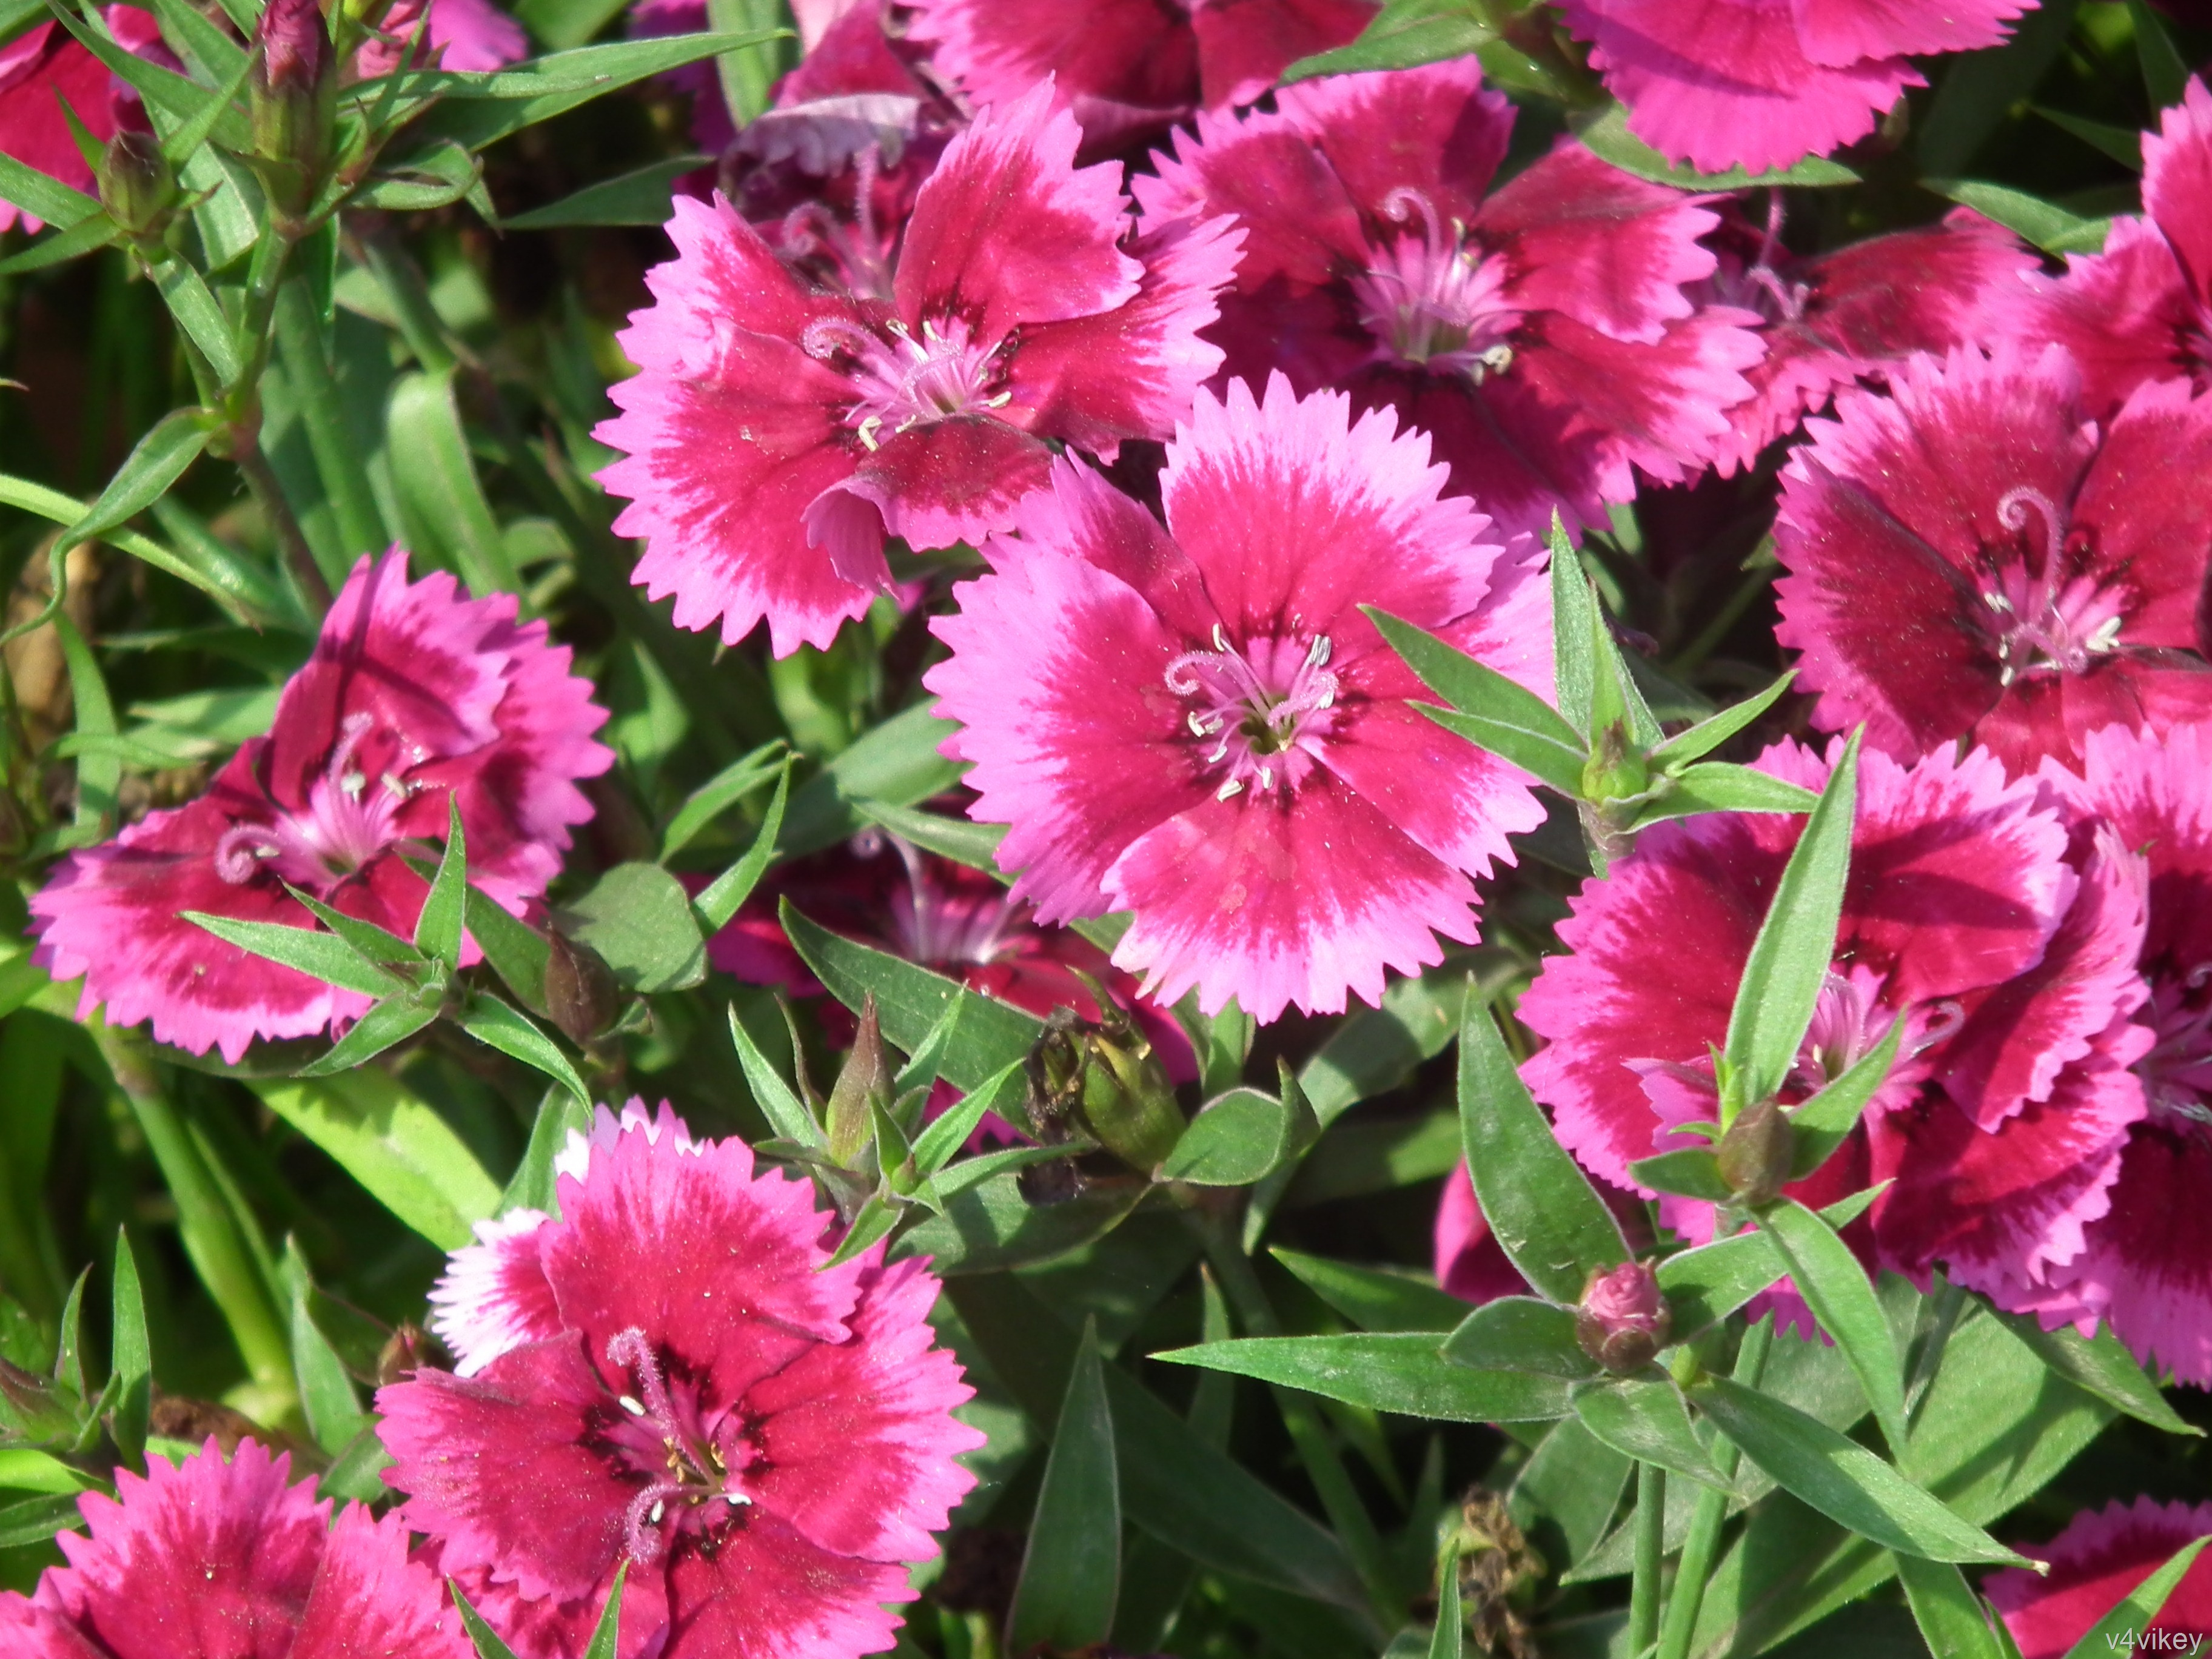 Dianthus neon star pinks are frilly flowers wallpaper tadka dianthus neon star pinks are frilly flowers mightylinksfo